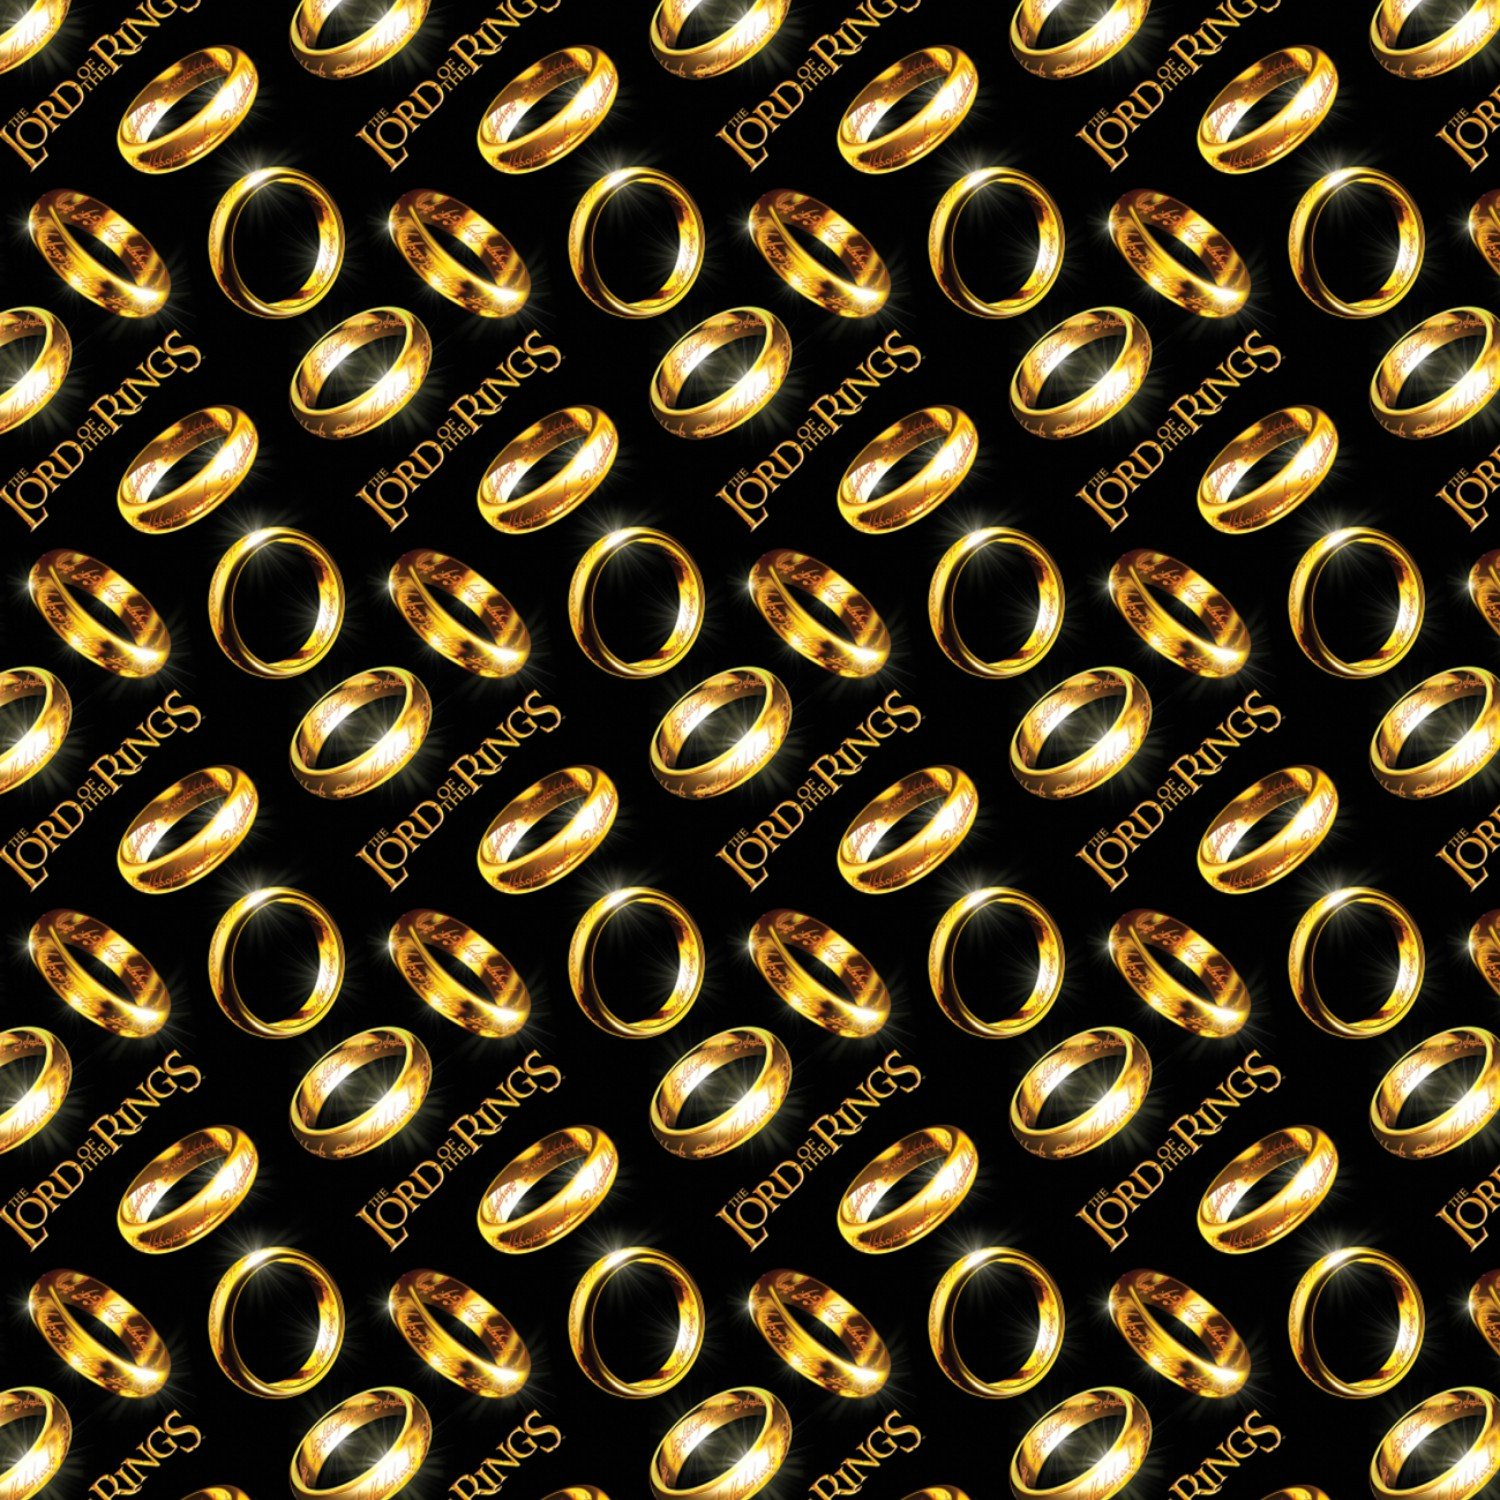 Camelot Fabrics - The Lord of the Rings & The Hobbit - Lord of The Rings Diagonal Rings - Black